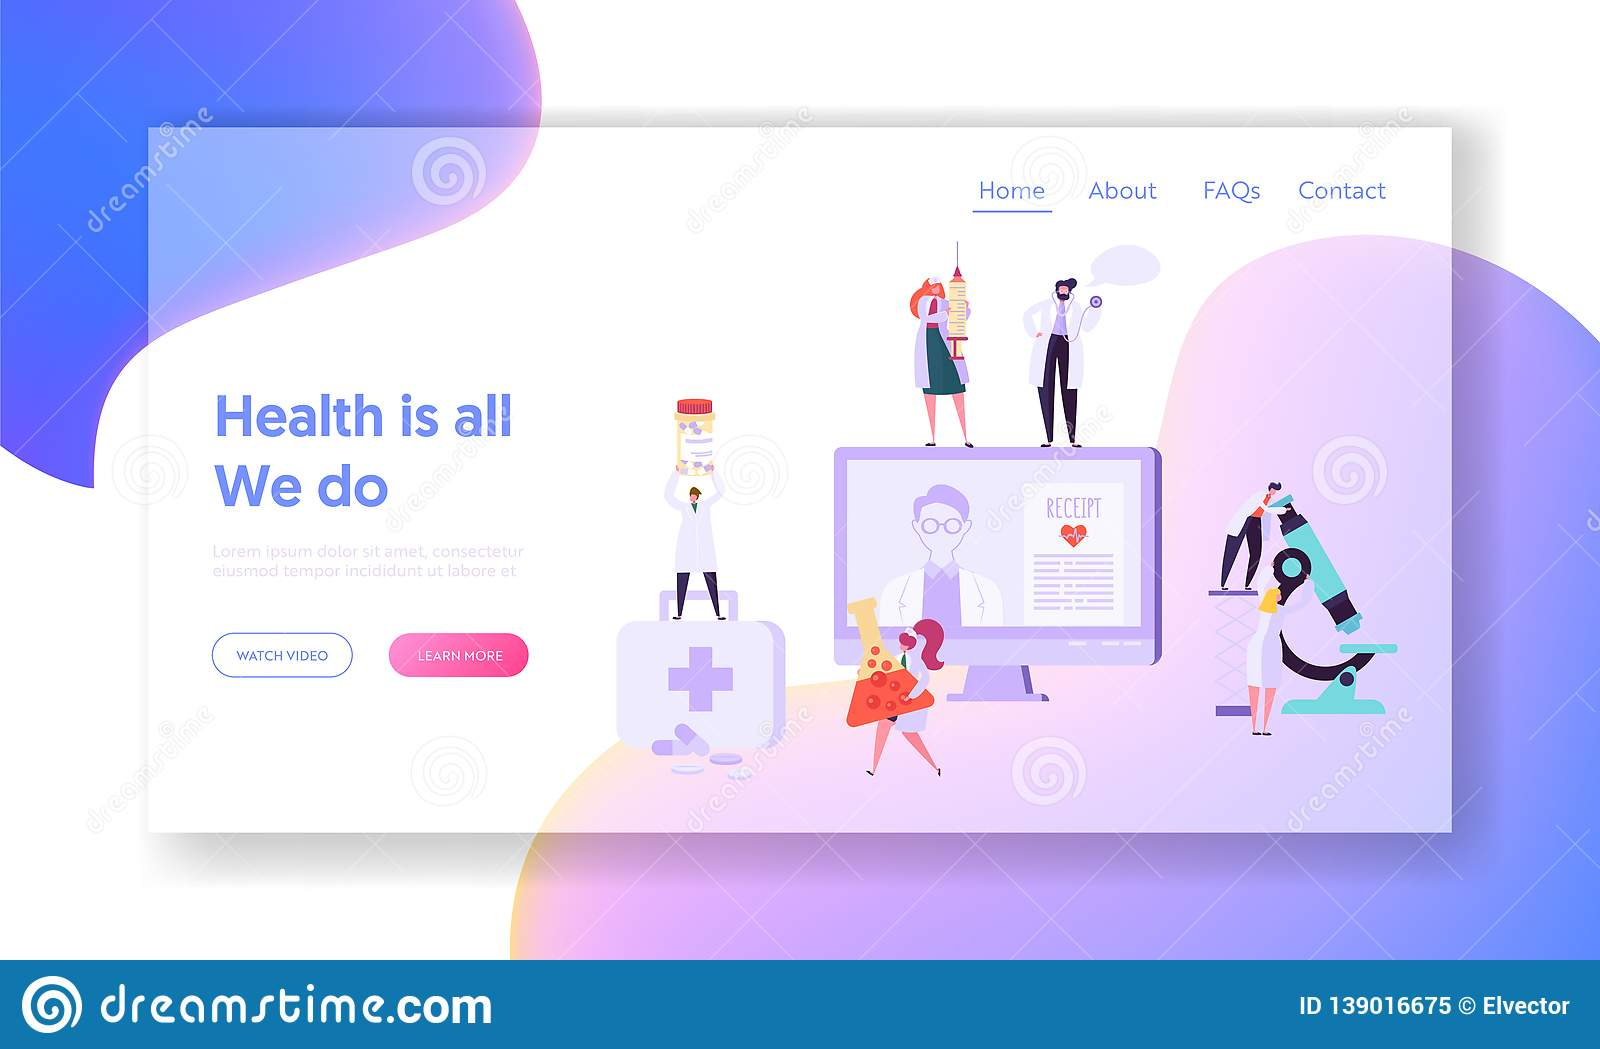 Online Medicical Health Care Concept Landing Page. Digital Clinic Receipt for Patient. Hospital Doctor Character